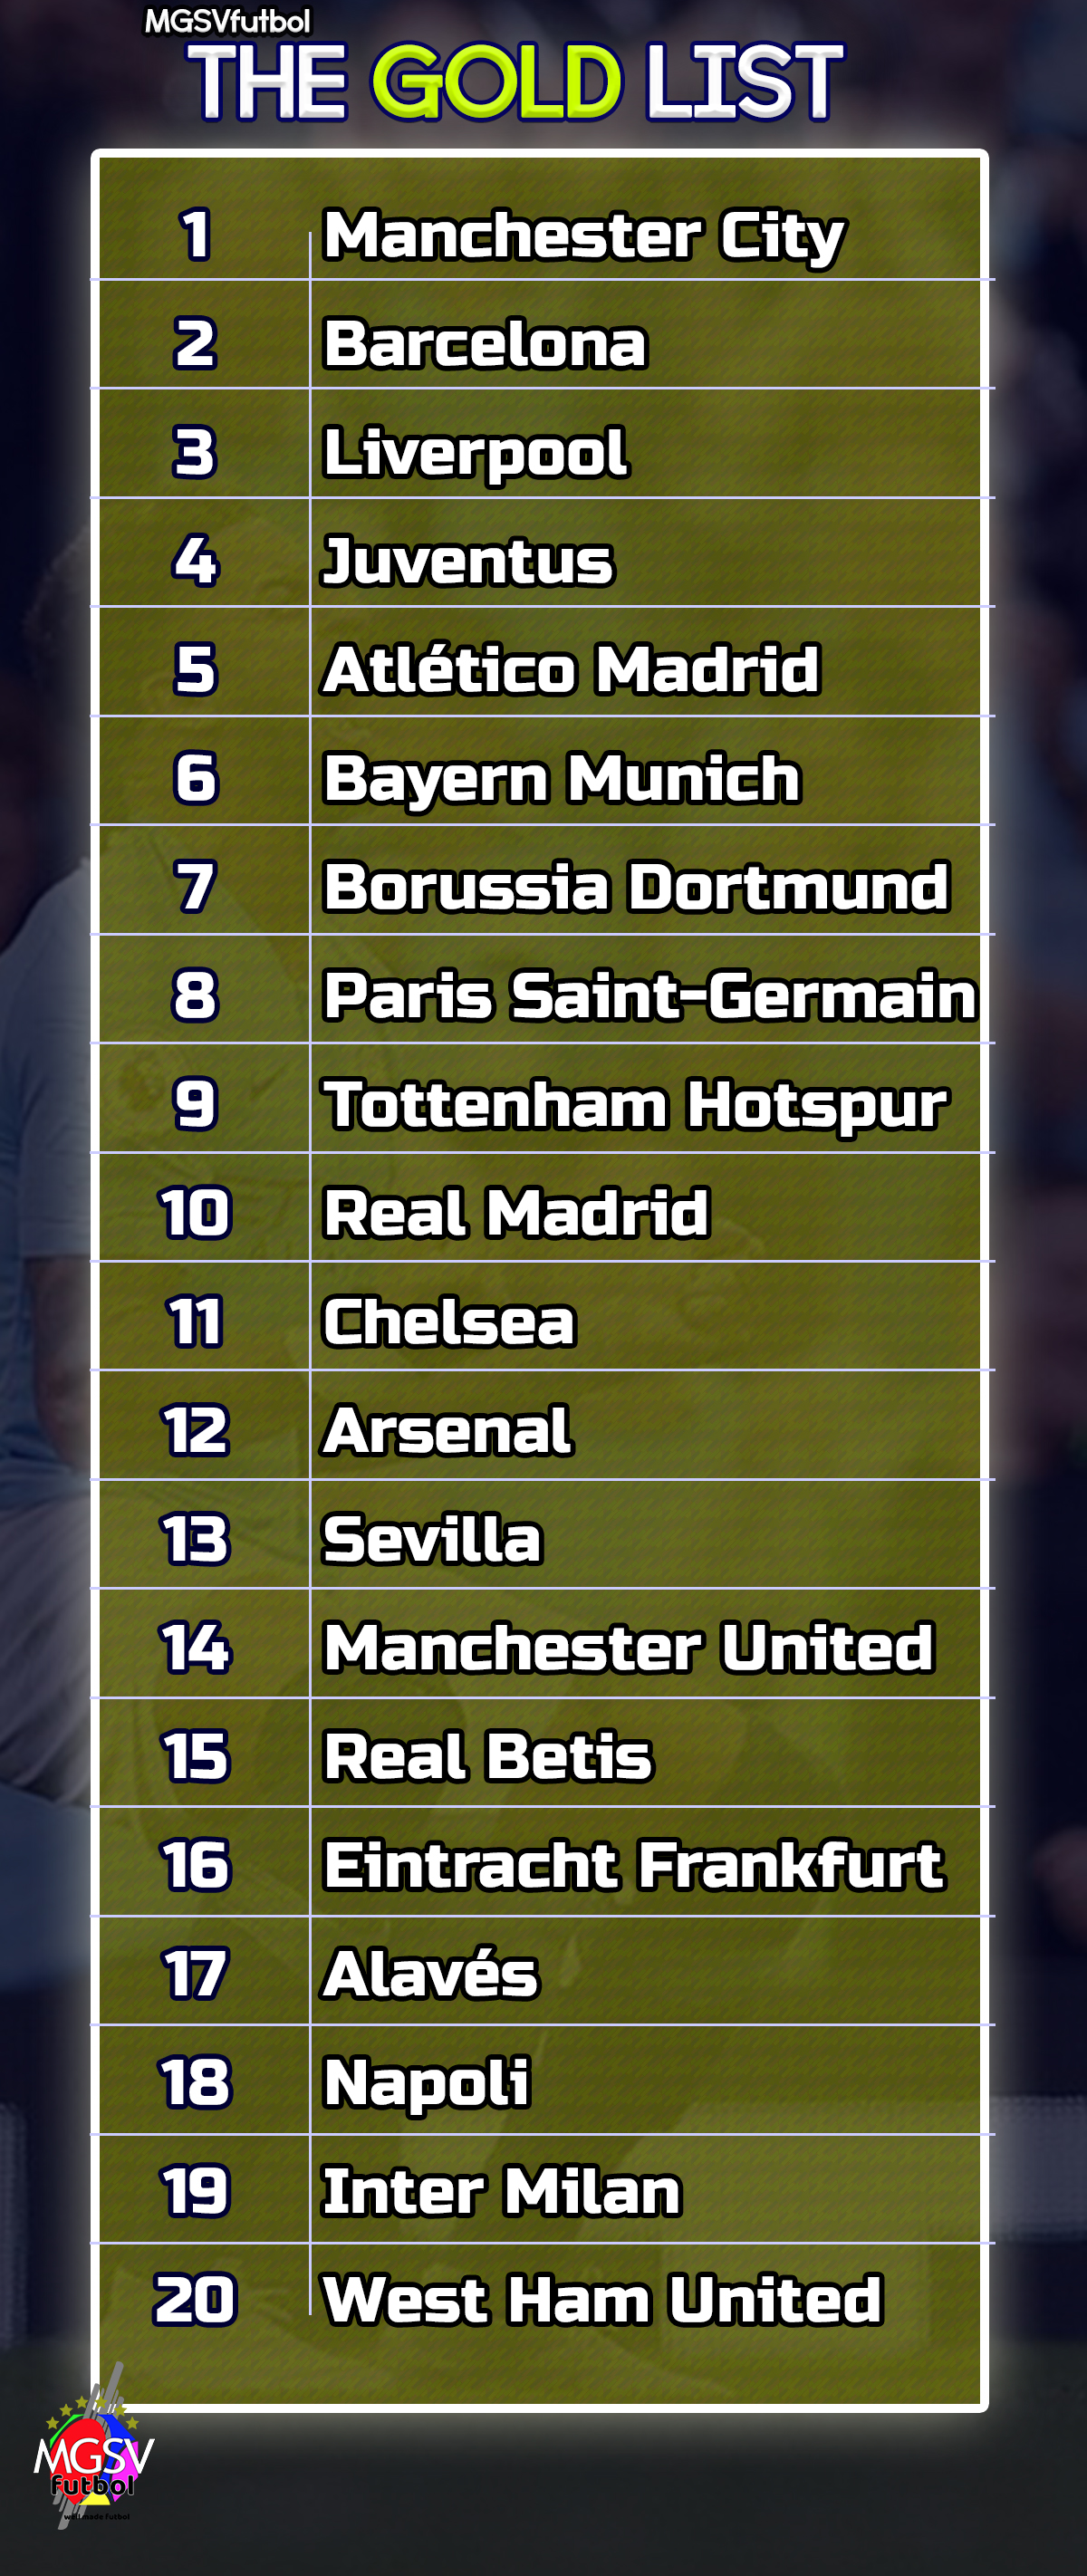 'Gold List' – the top 20 club teams from the 'top 5' leagues in Europe